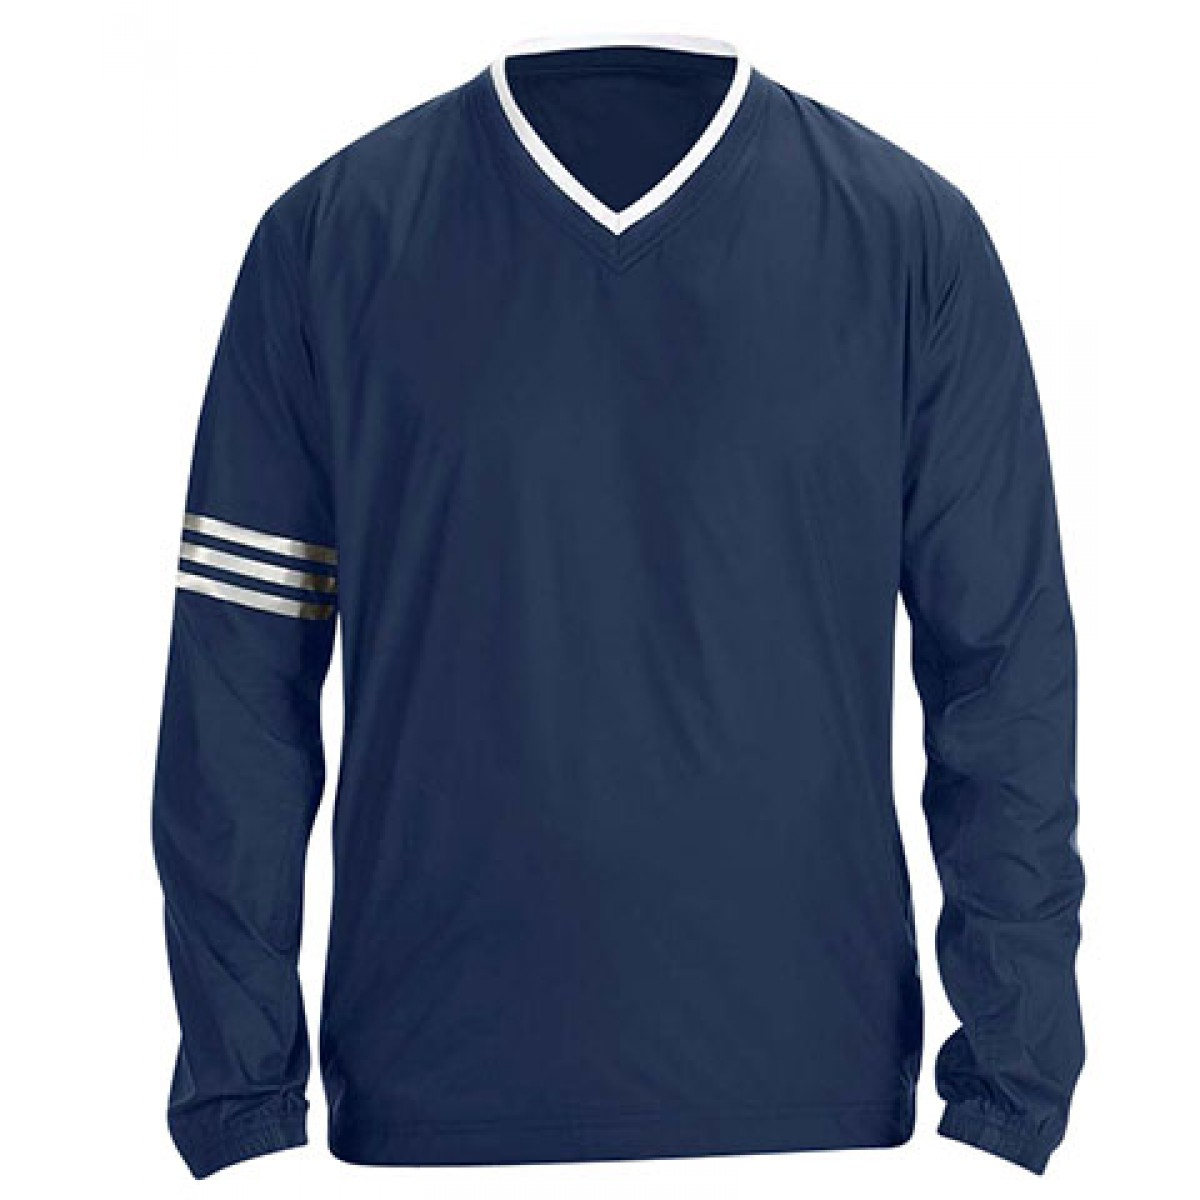 Adidas ClimaLite V-Neck Long Sleeve Wind Shirt-Navy-L